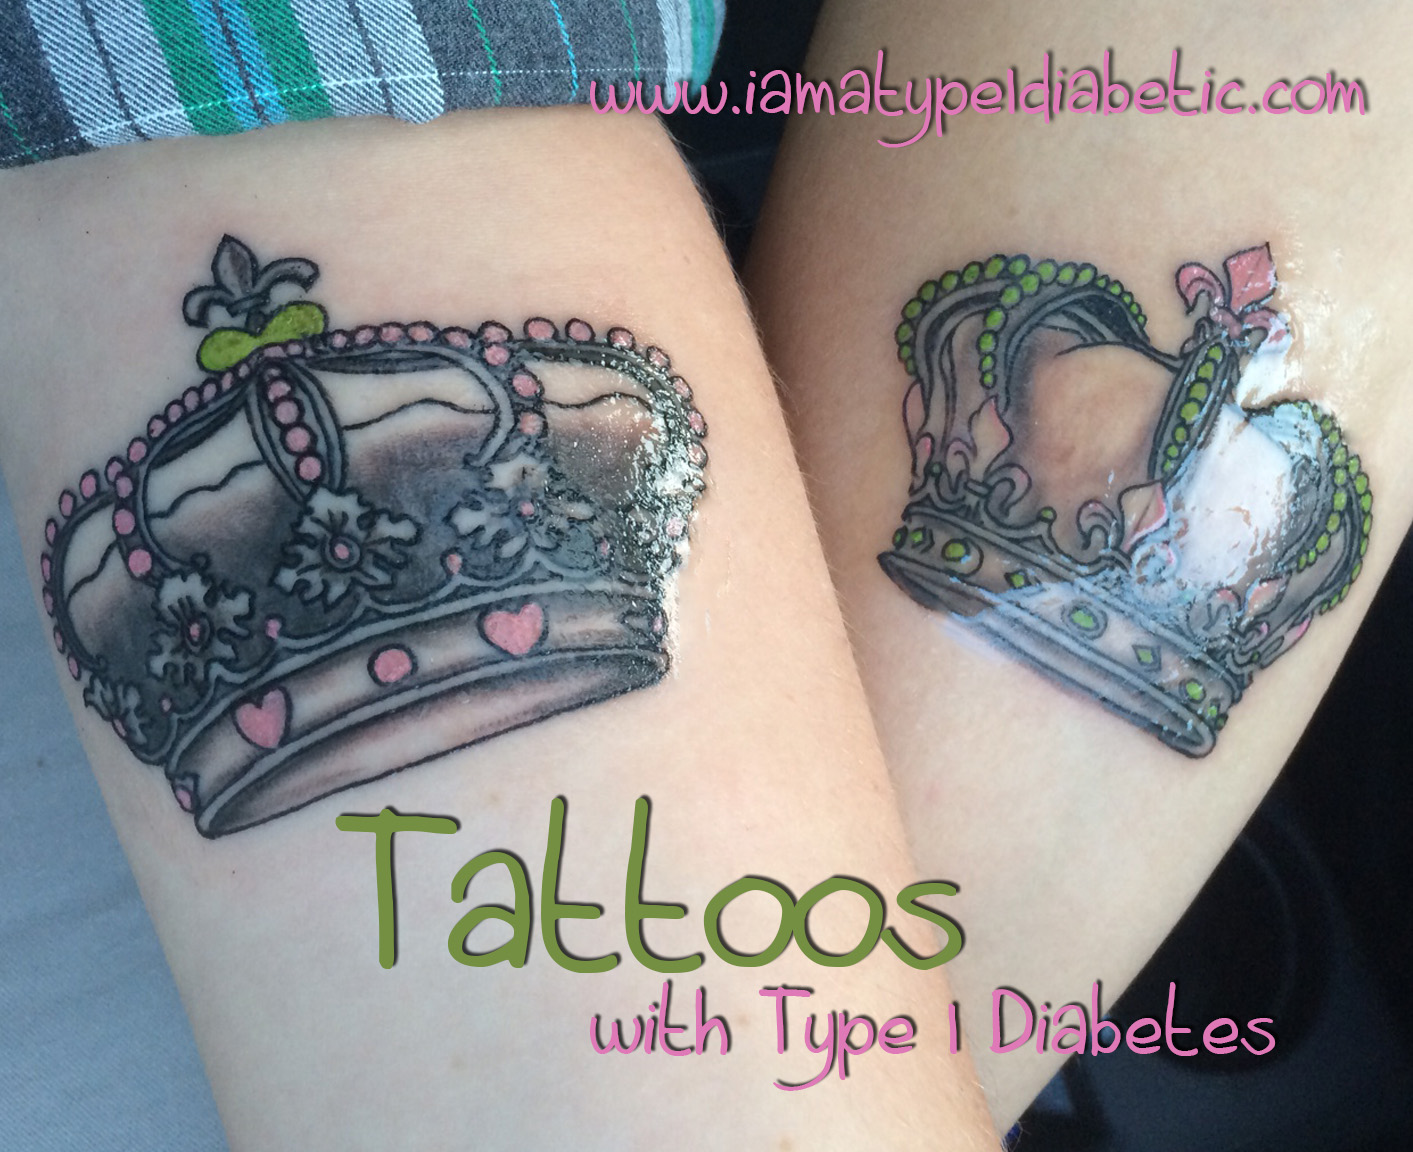 Can People With Diabetes Get Tattoos and Piercings What to Know Before You Go images